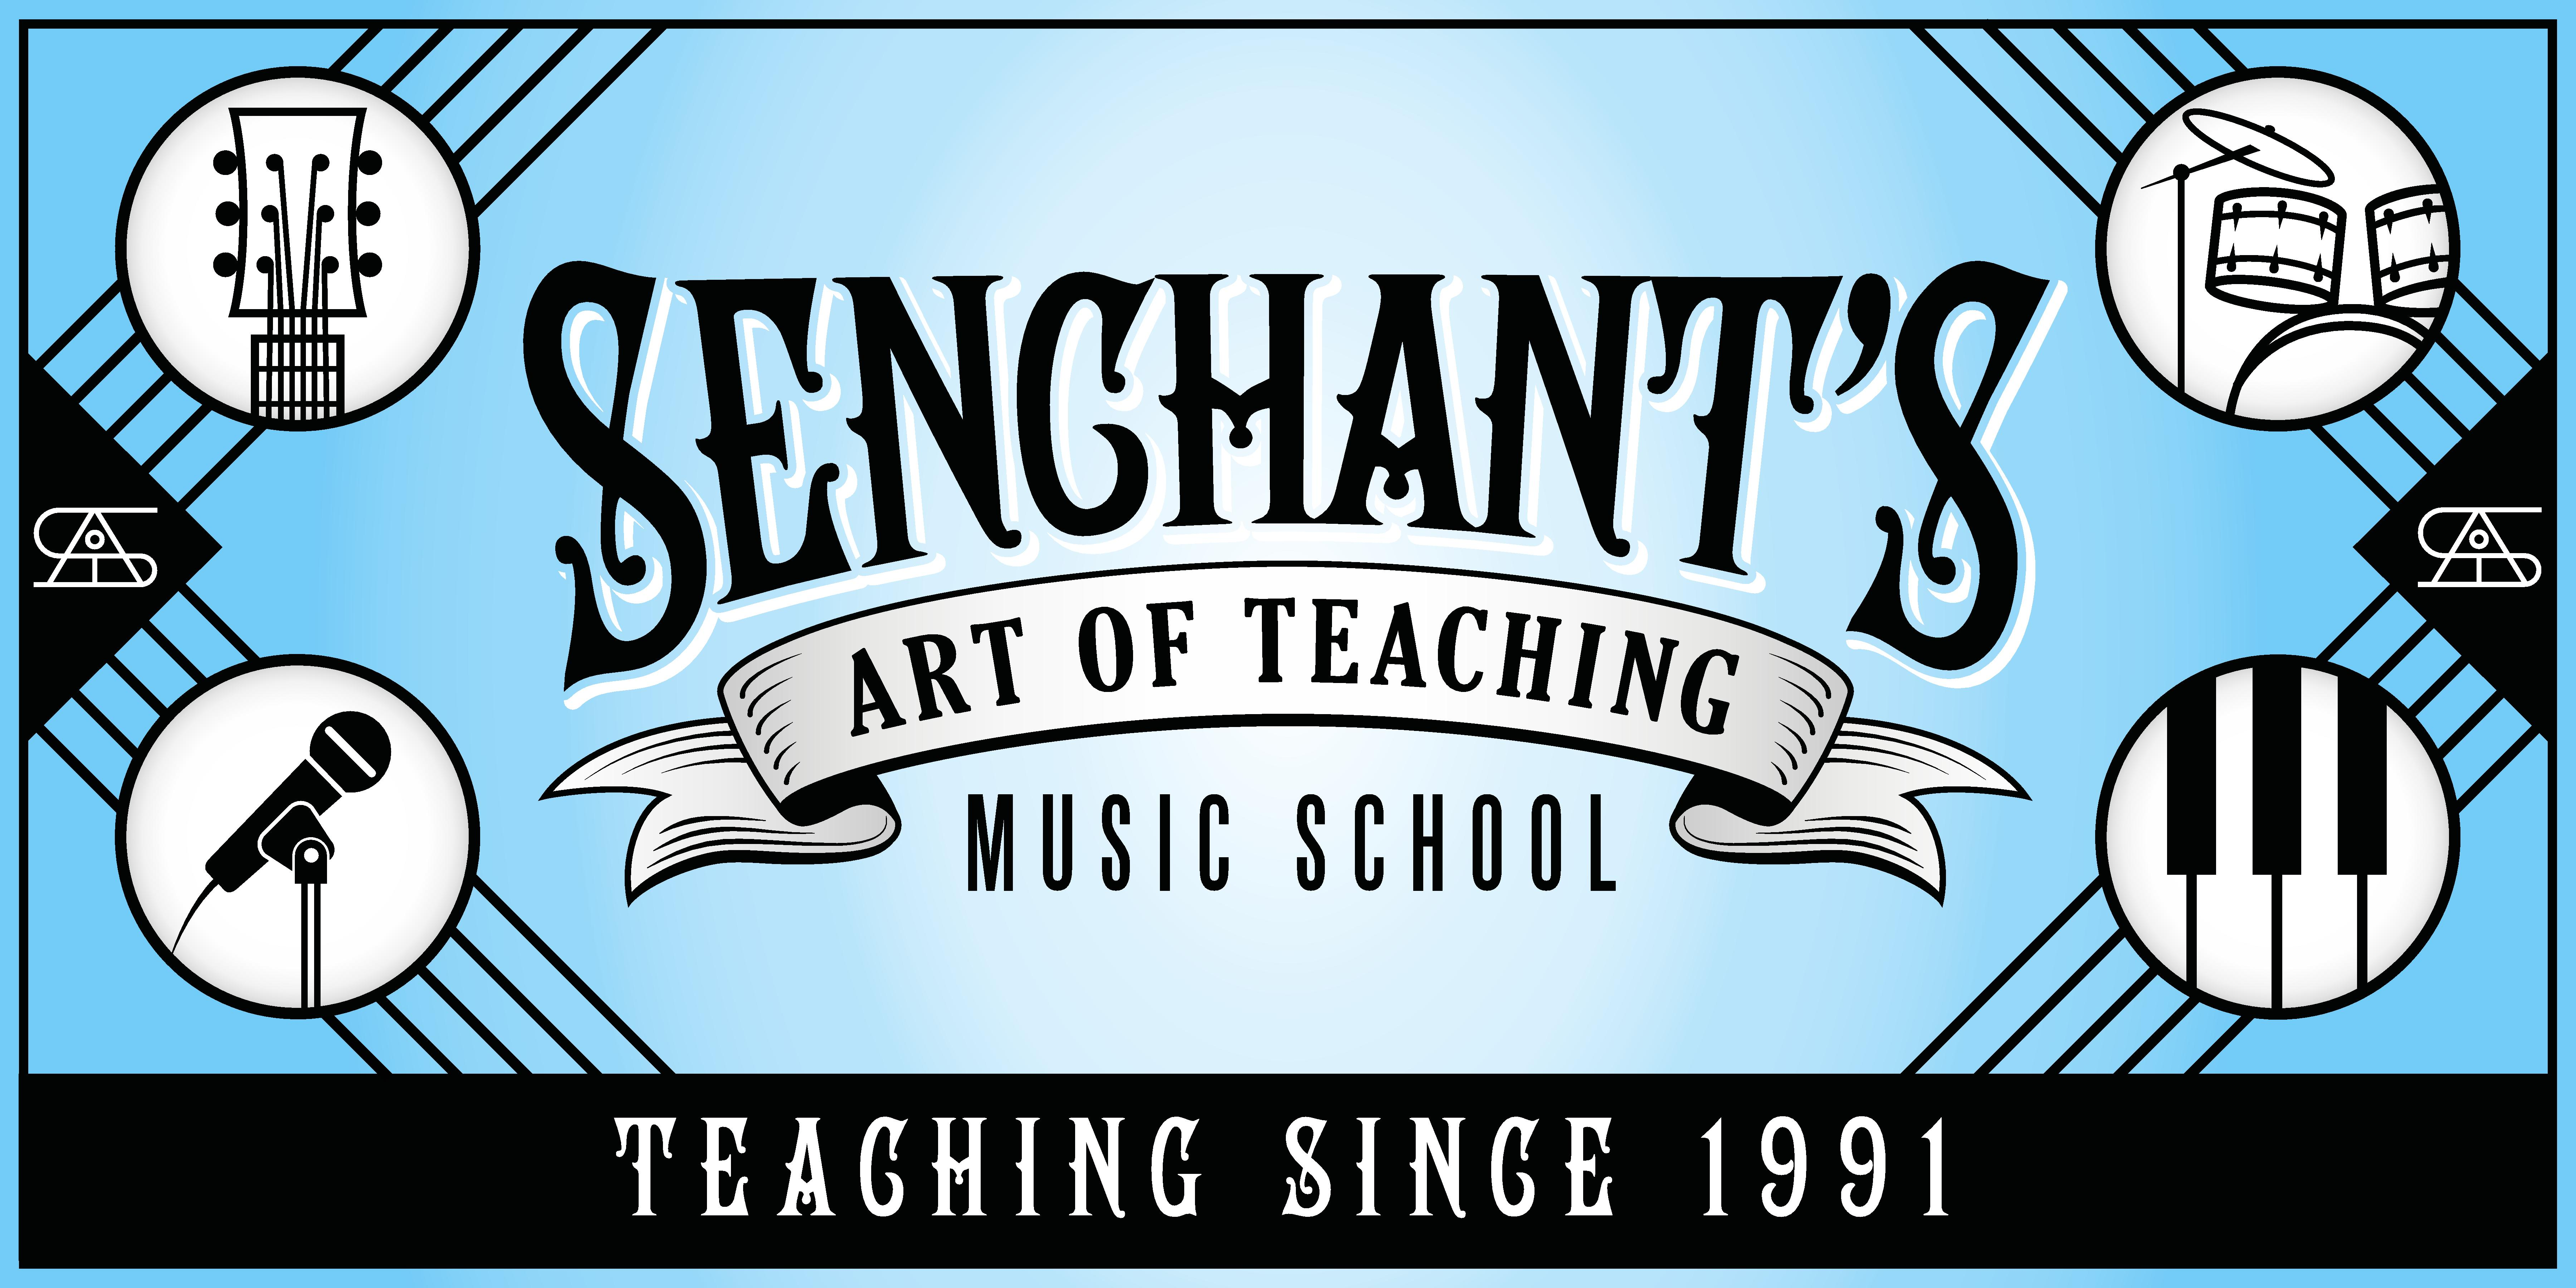 Senchant's Art of Teaching, teaching since 1991